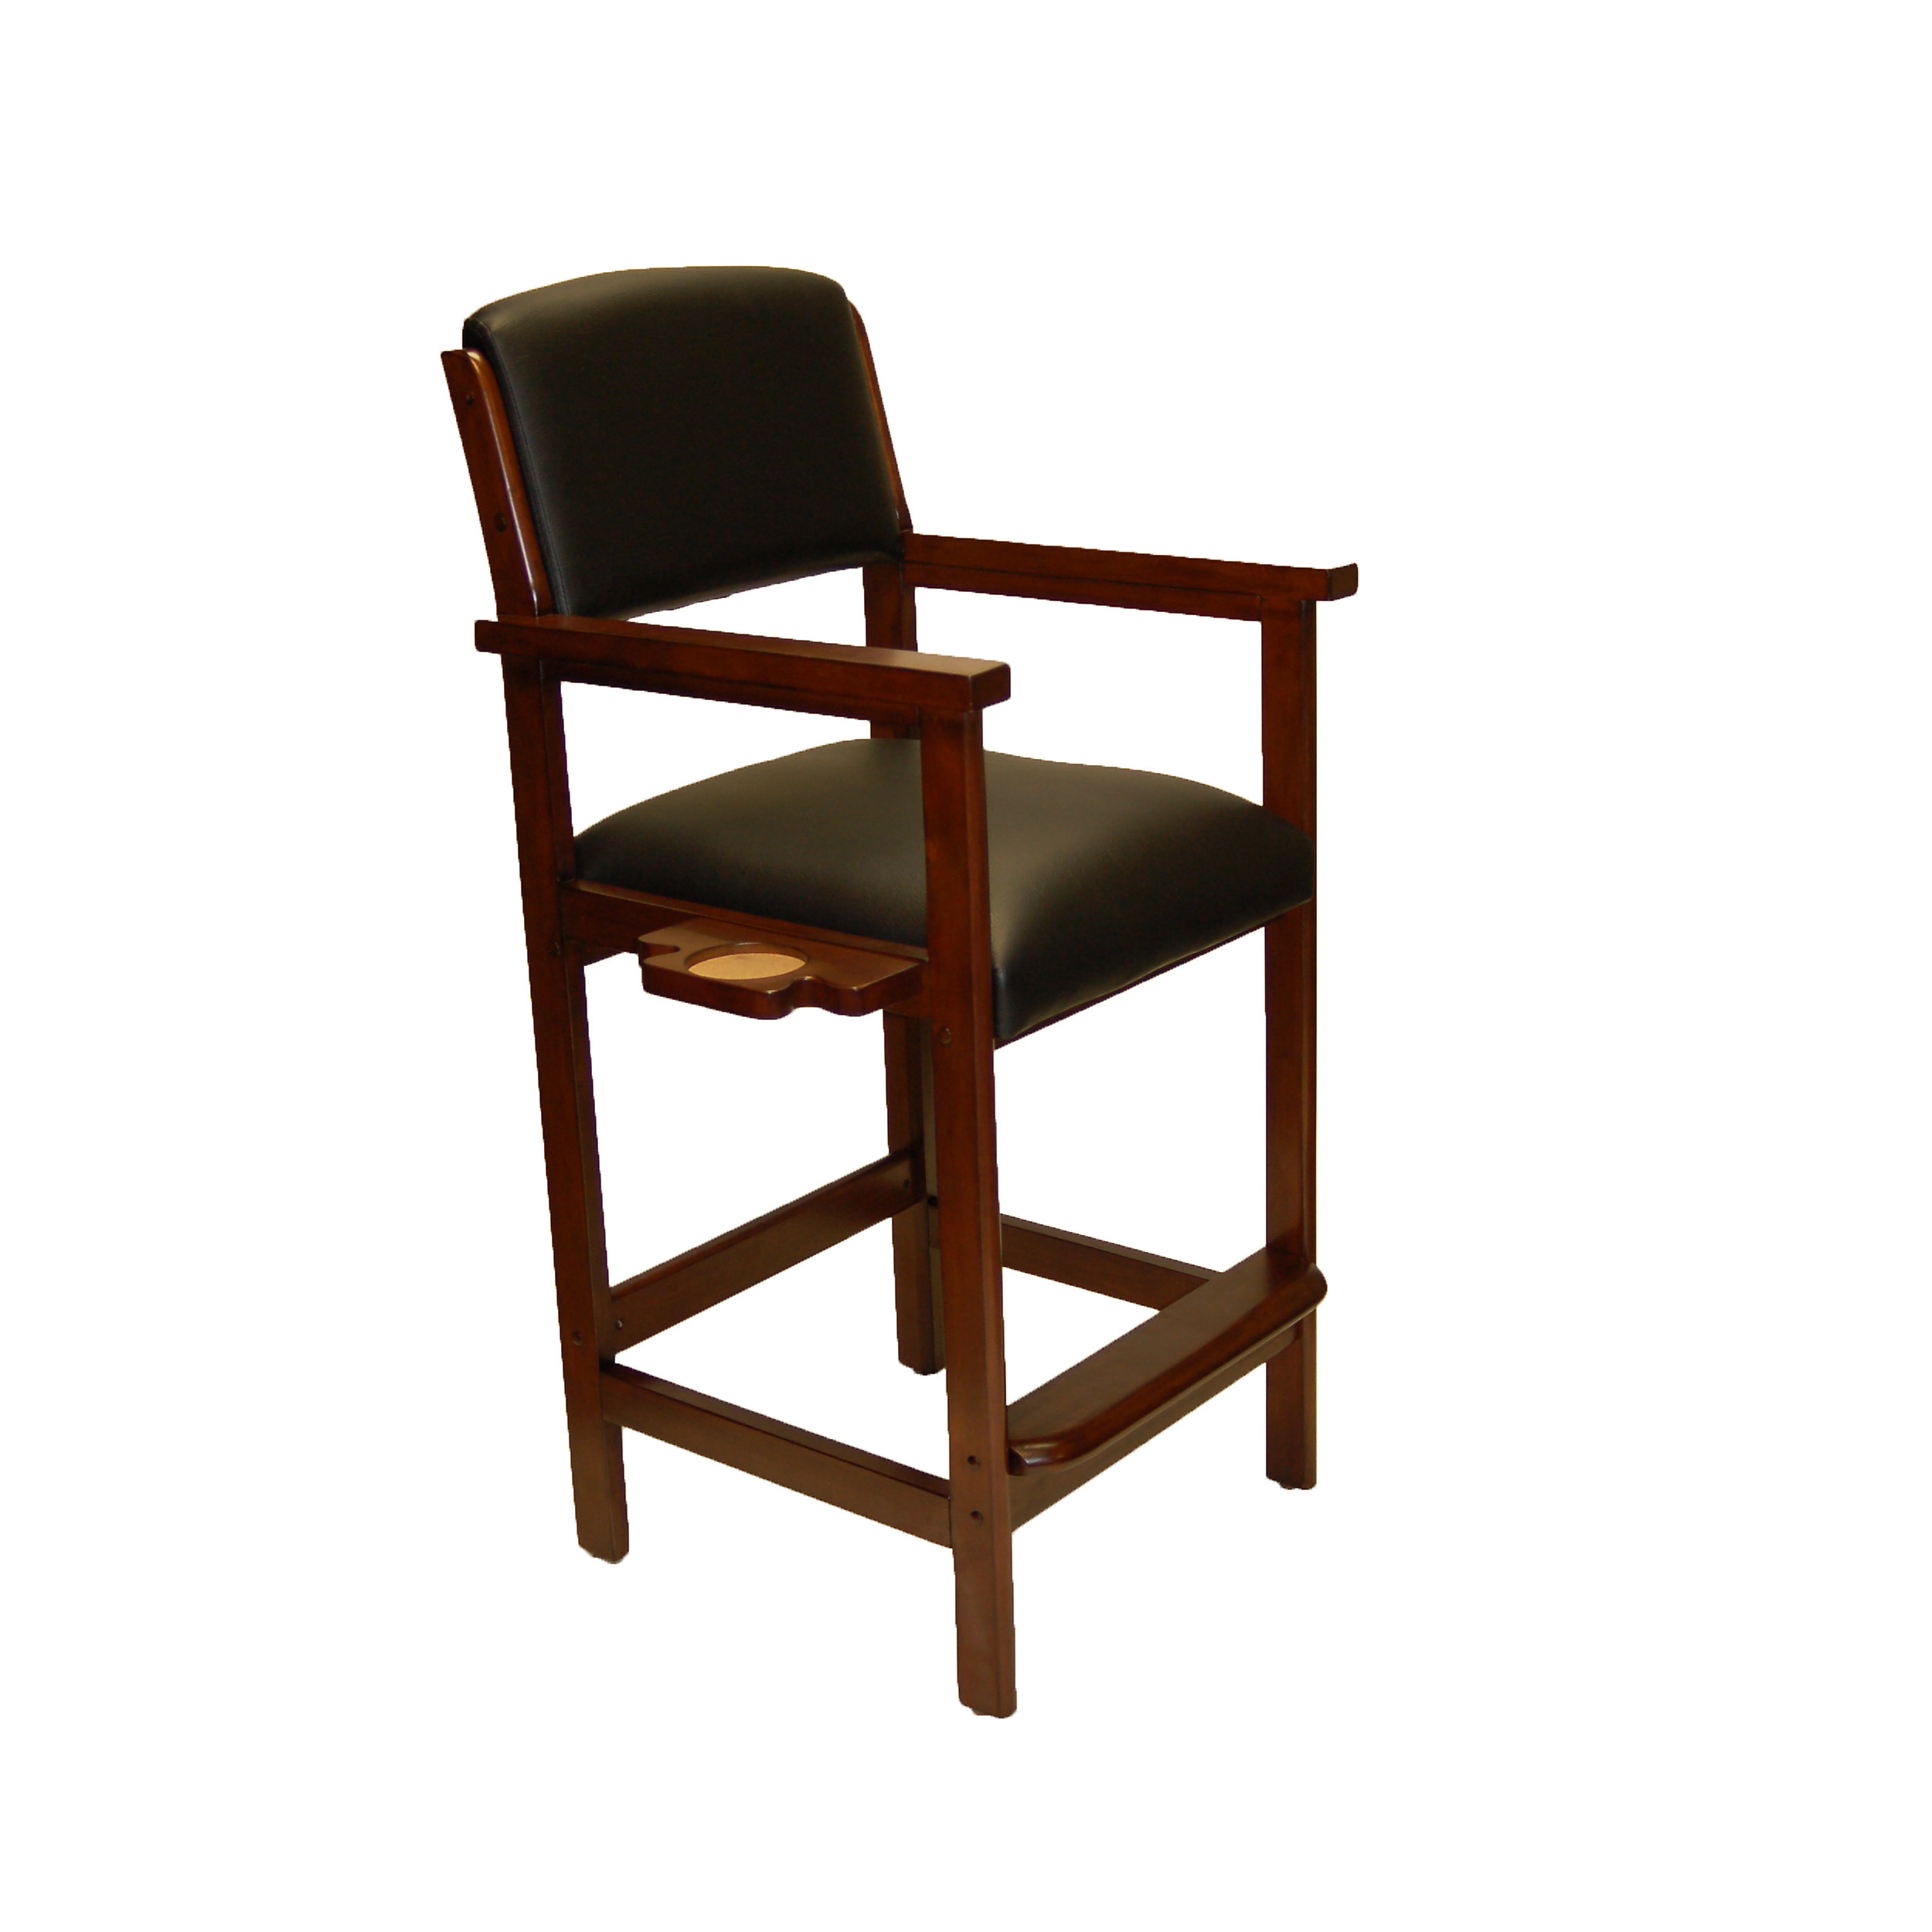 sc 1 st  Billiard Factory & Billiards Spectator Chairs | Spectator Chairs for Sale